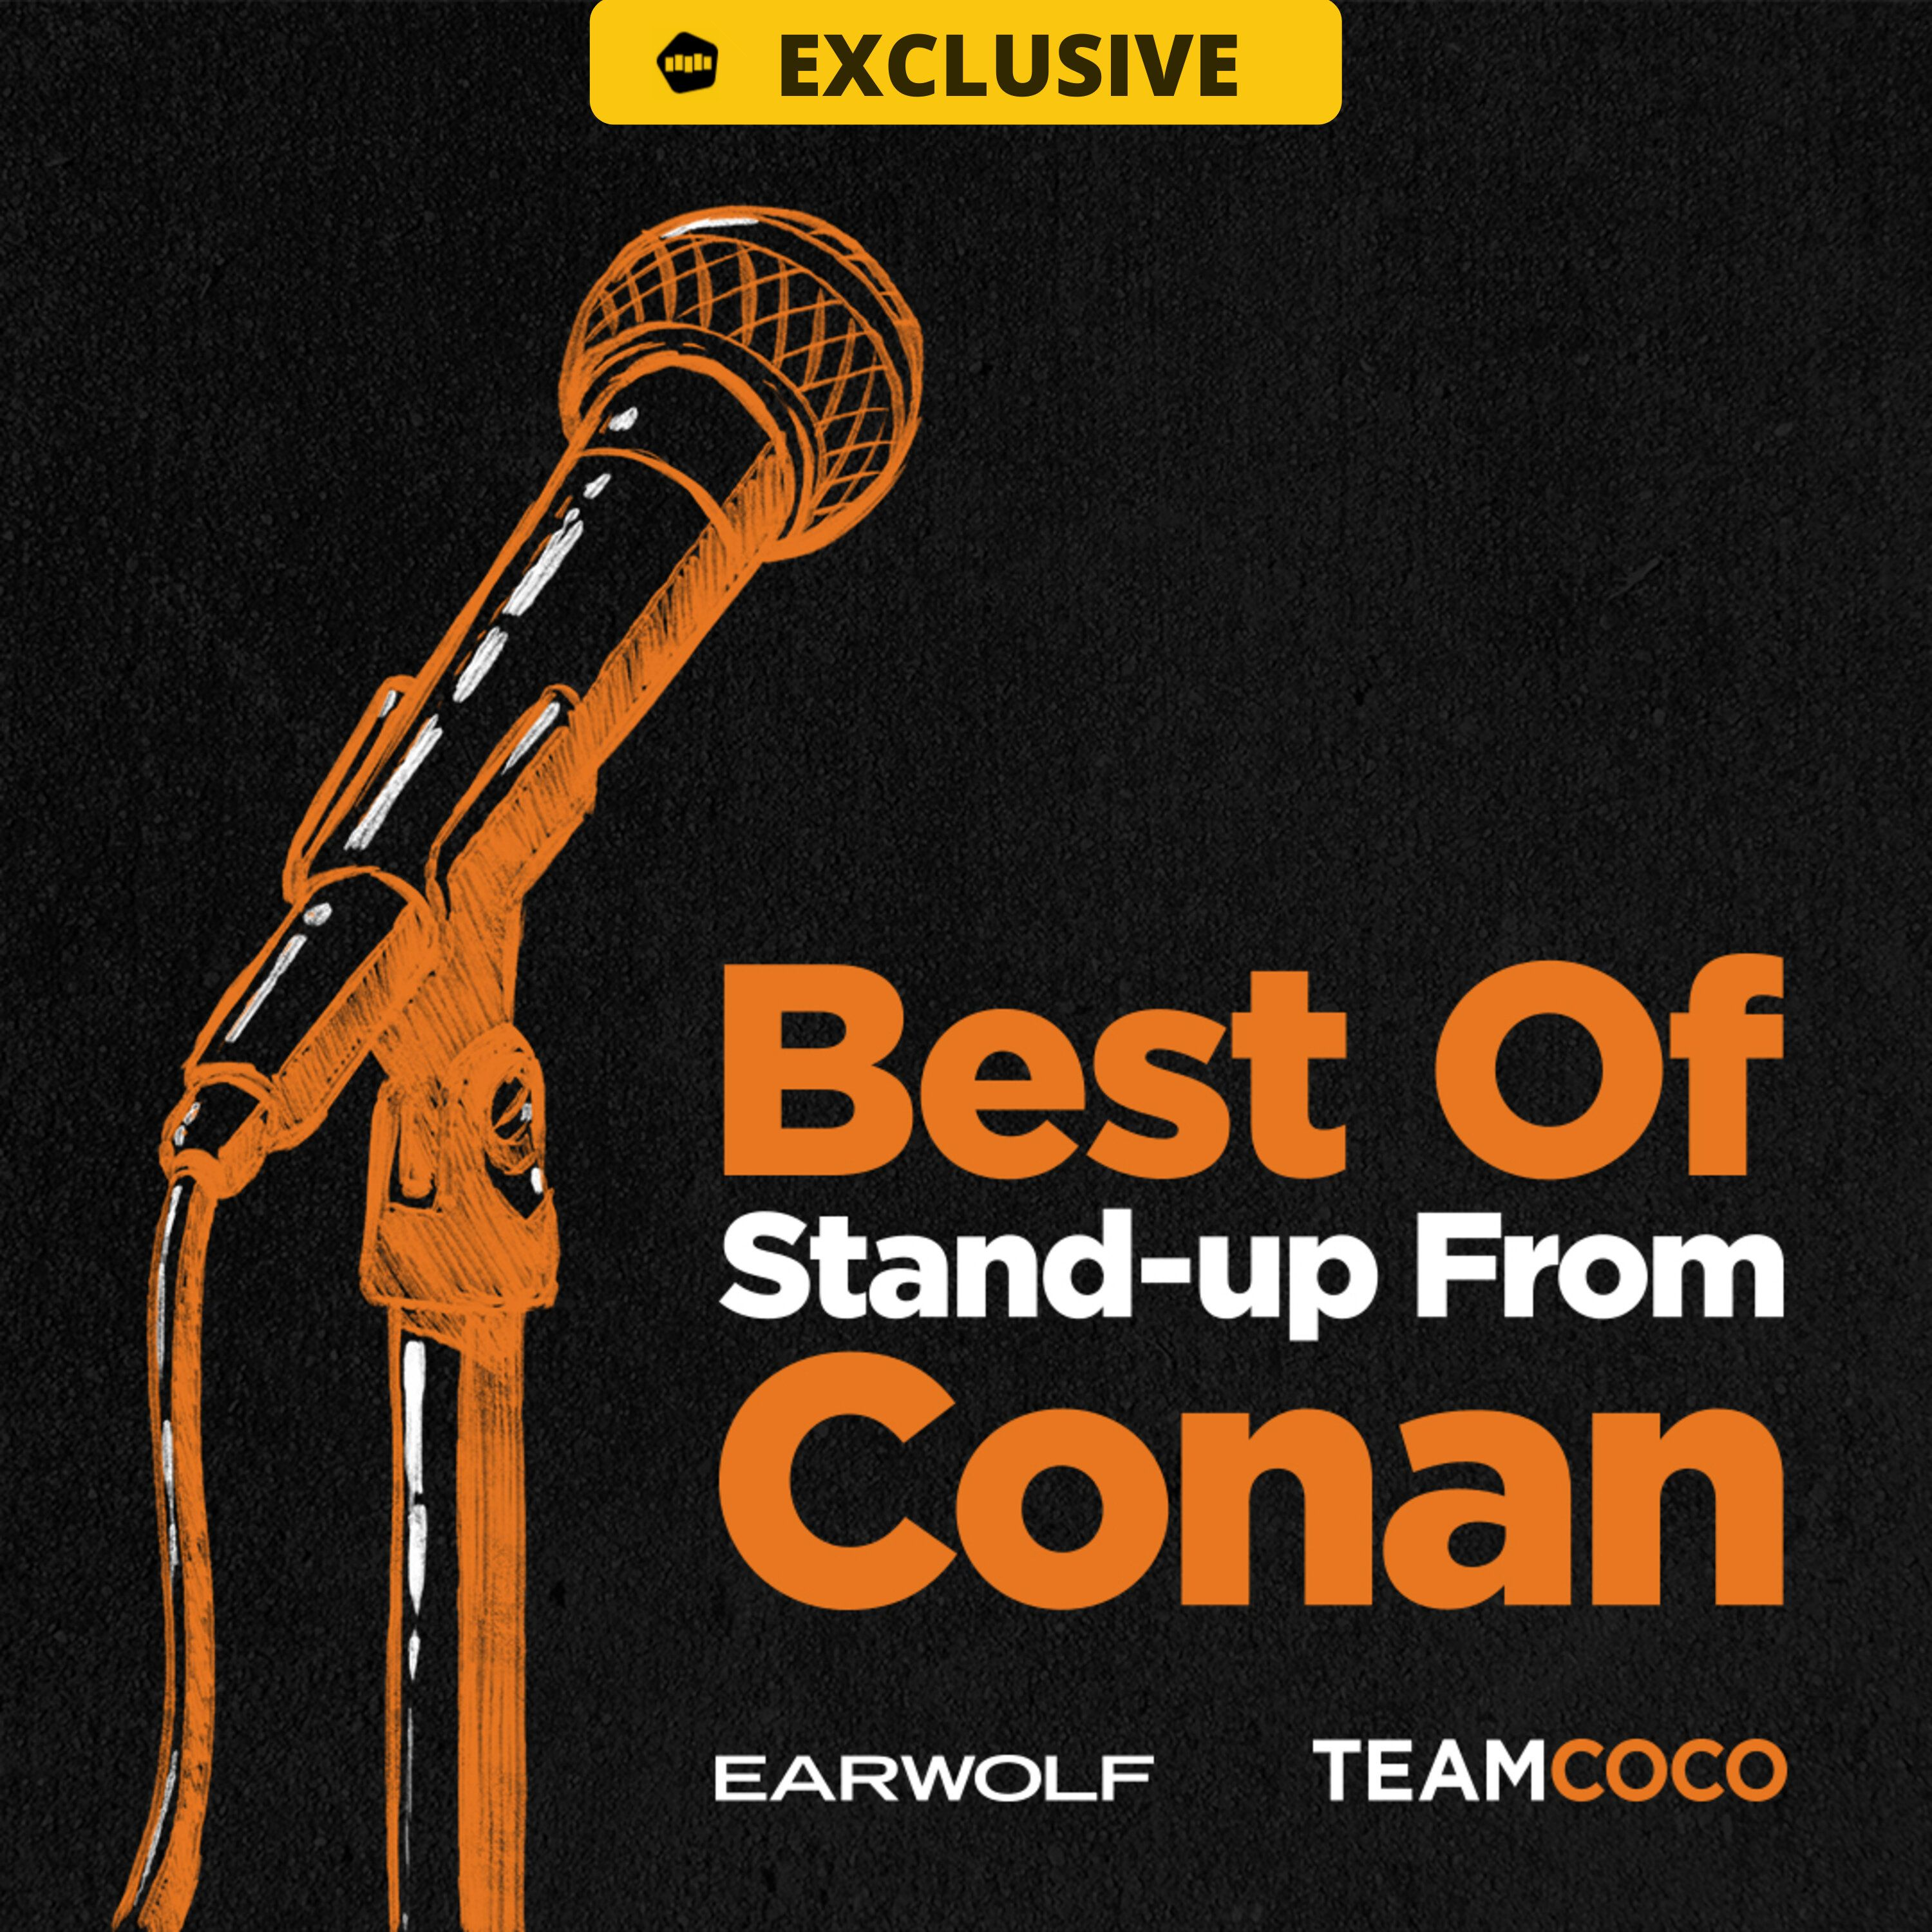 Best Of Stand-Up From Conan